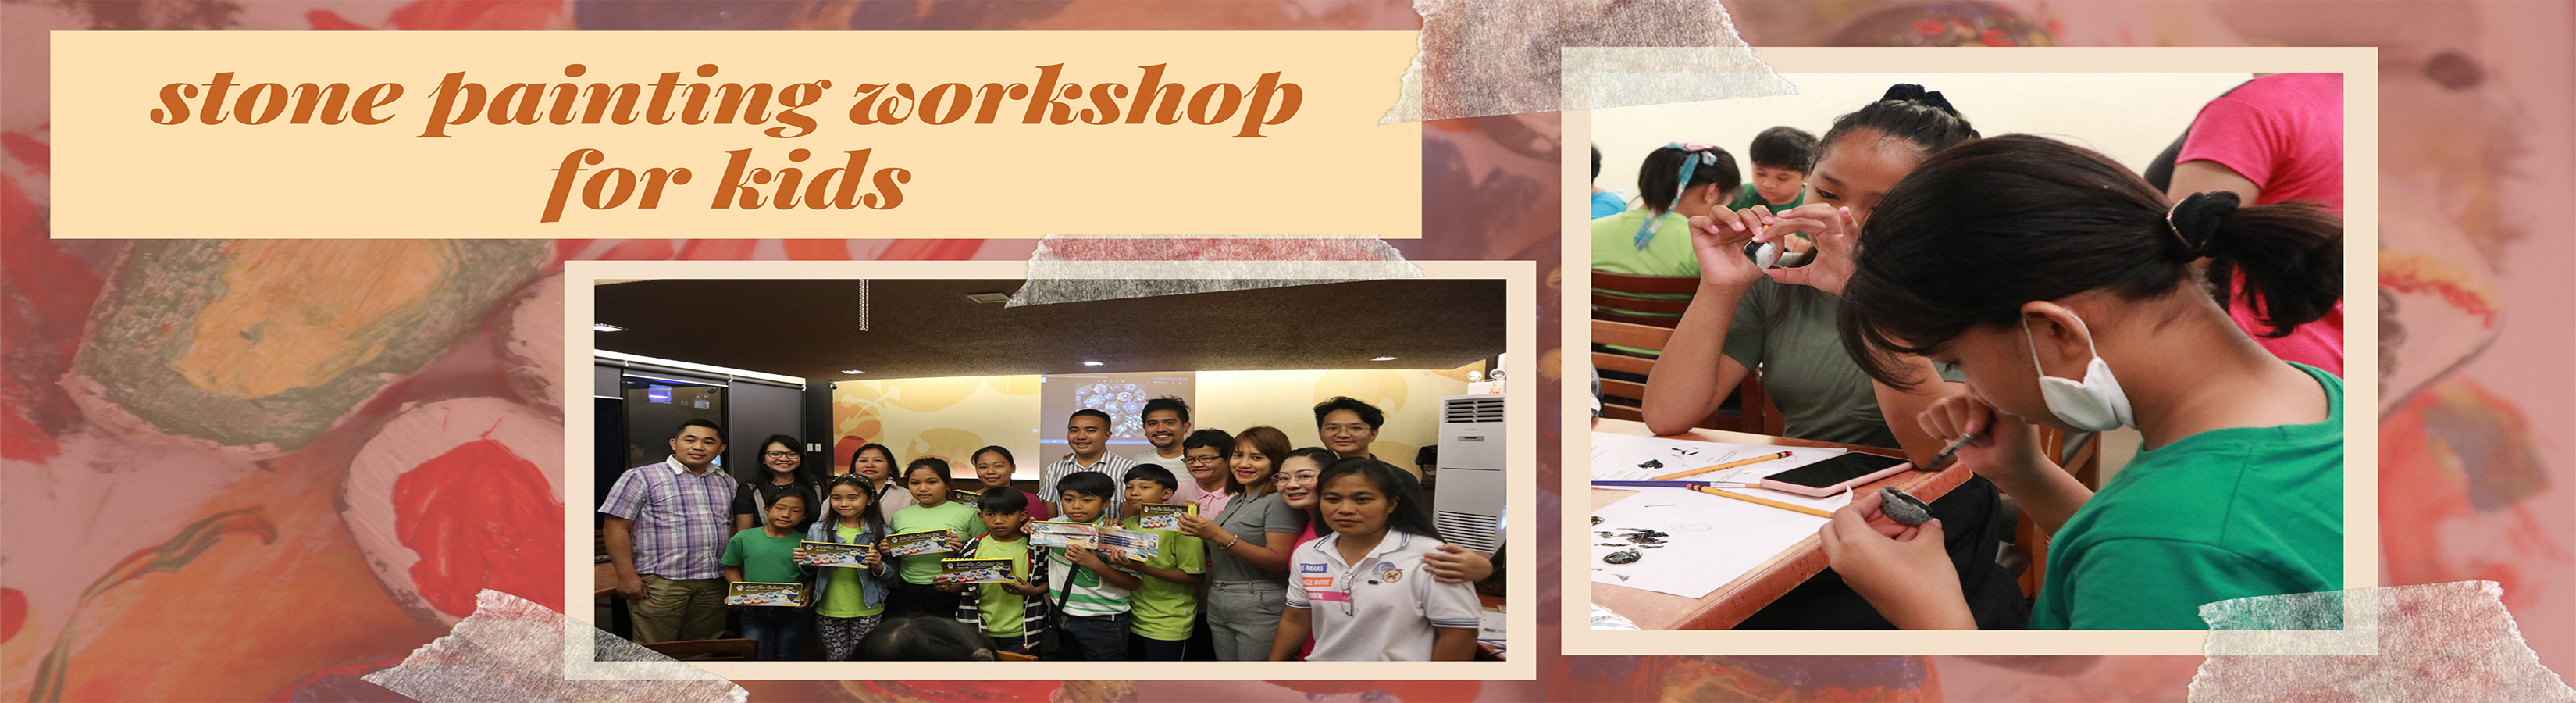 Stone Painting Workshop for Kids